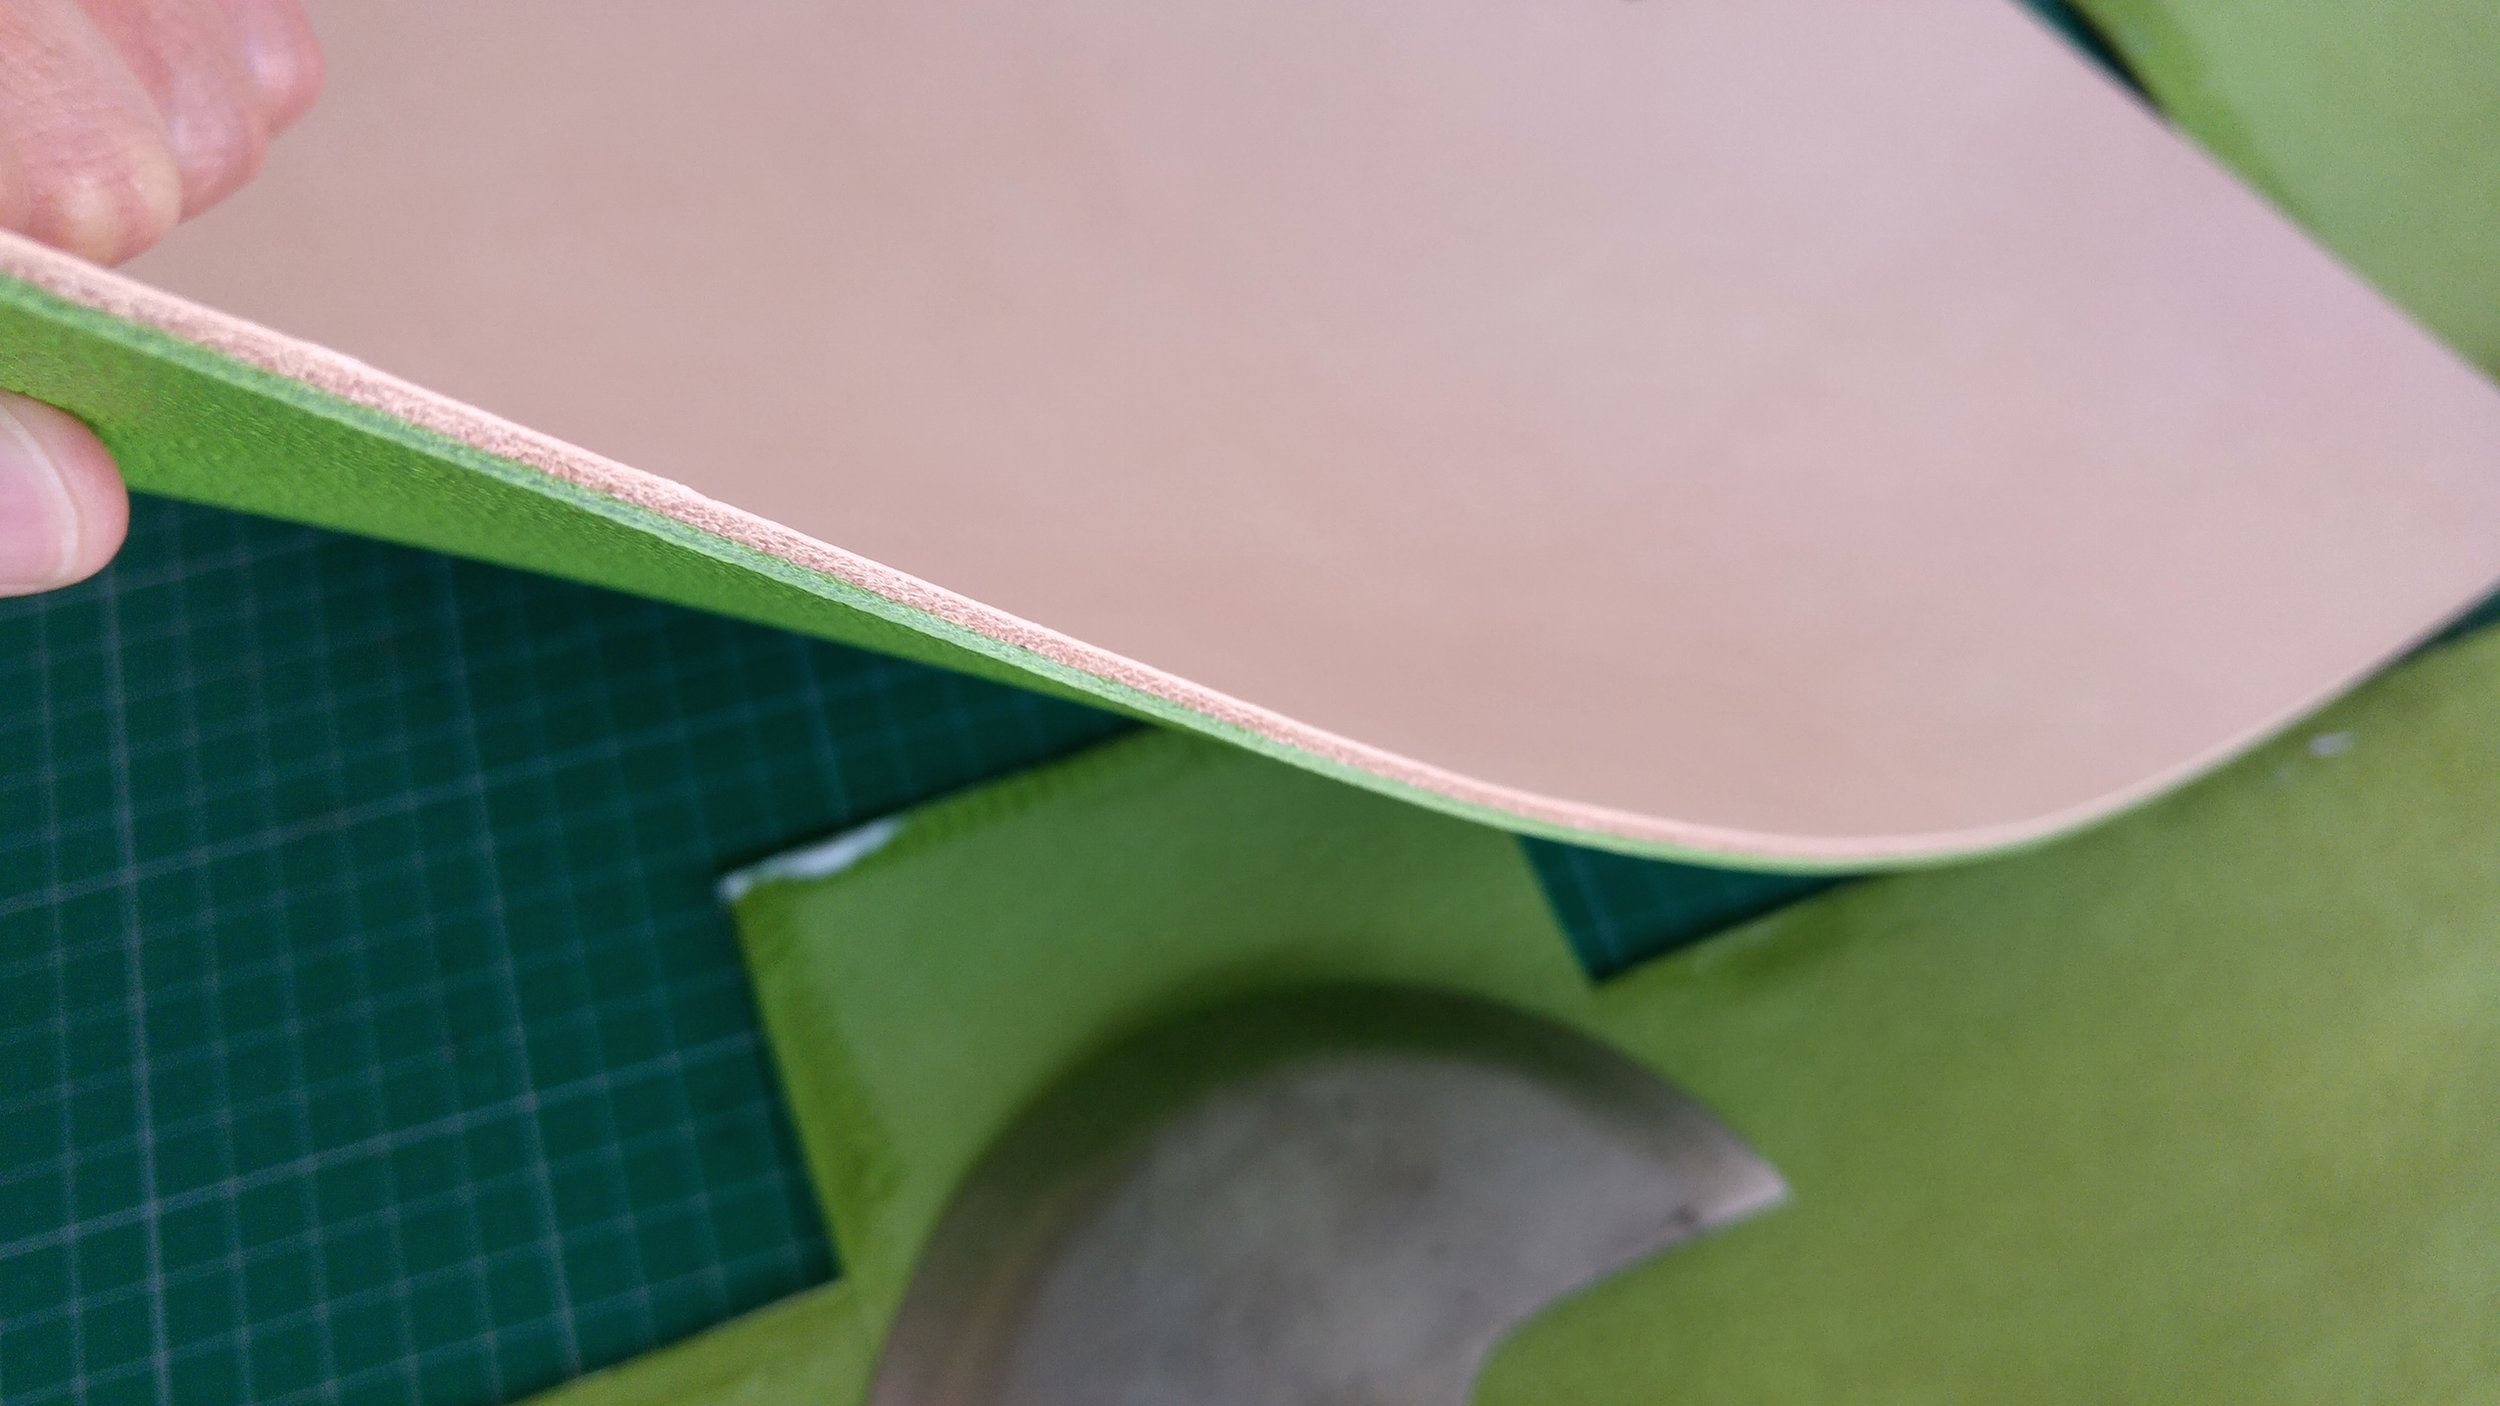 Neat glued surface with no visible glue line. This is critical for that clean burnish. The edge on this piece will be painted but it's good to know what is underneath that paint.